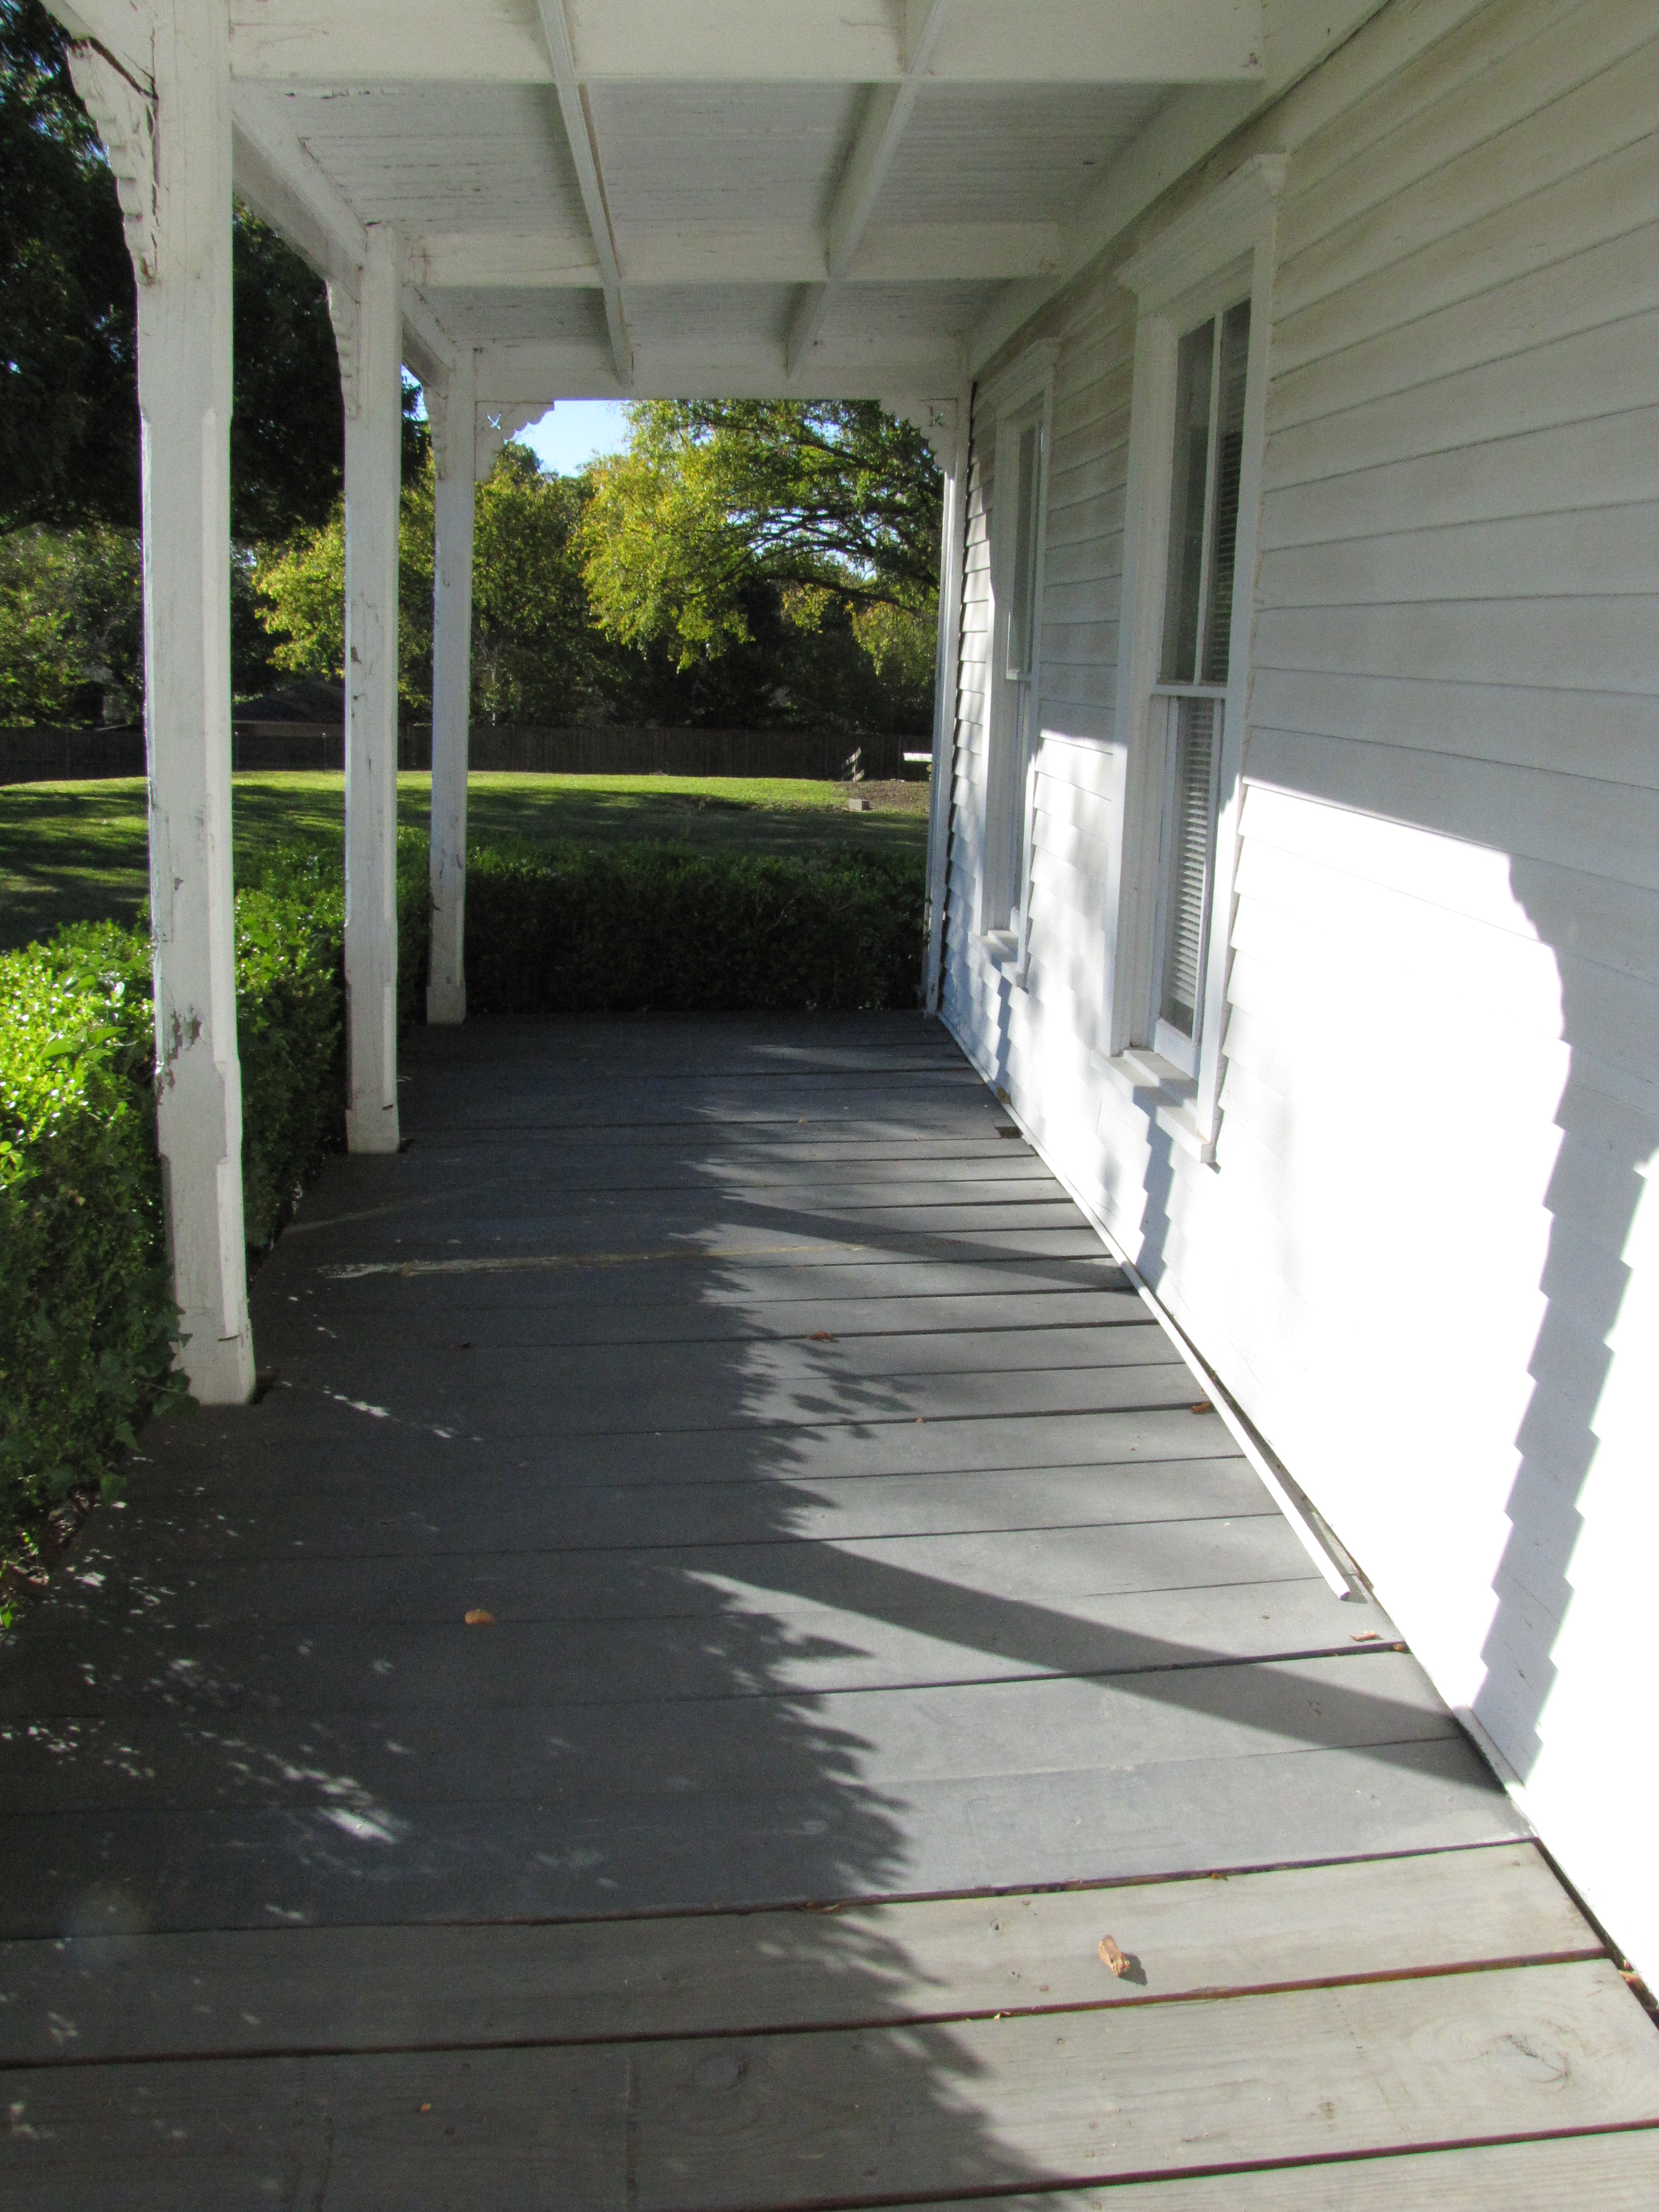 Downstairs Front Porch and Support Columns, Facing